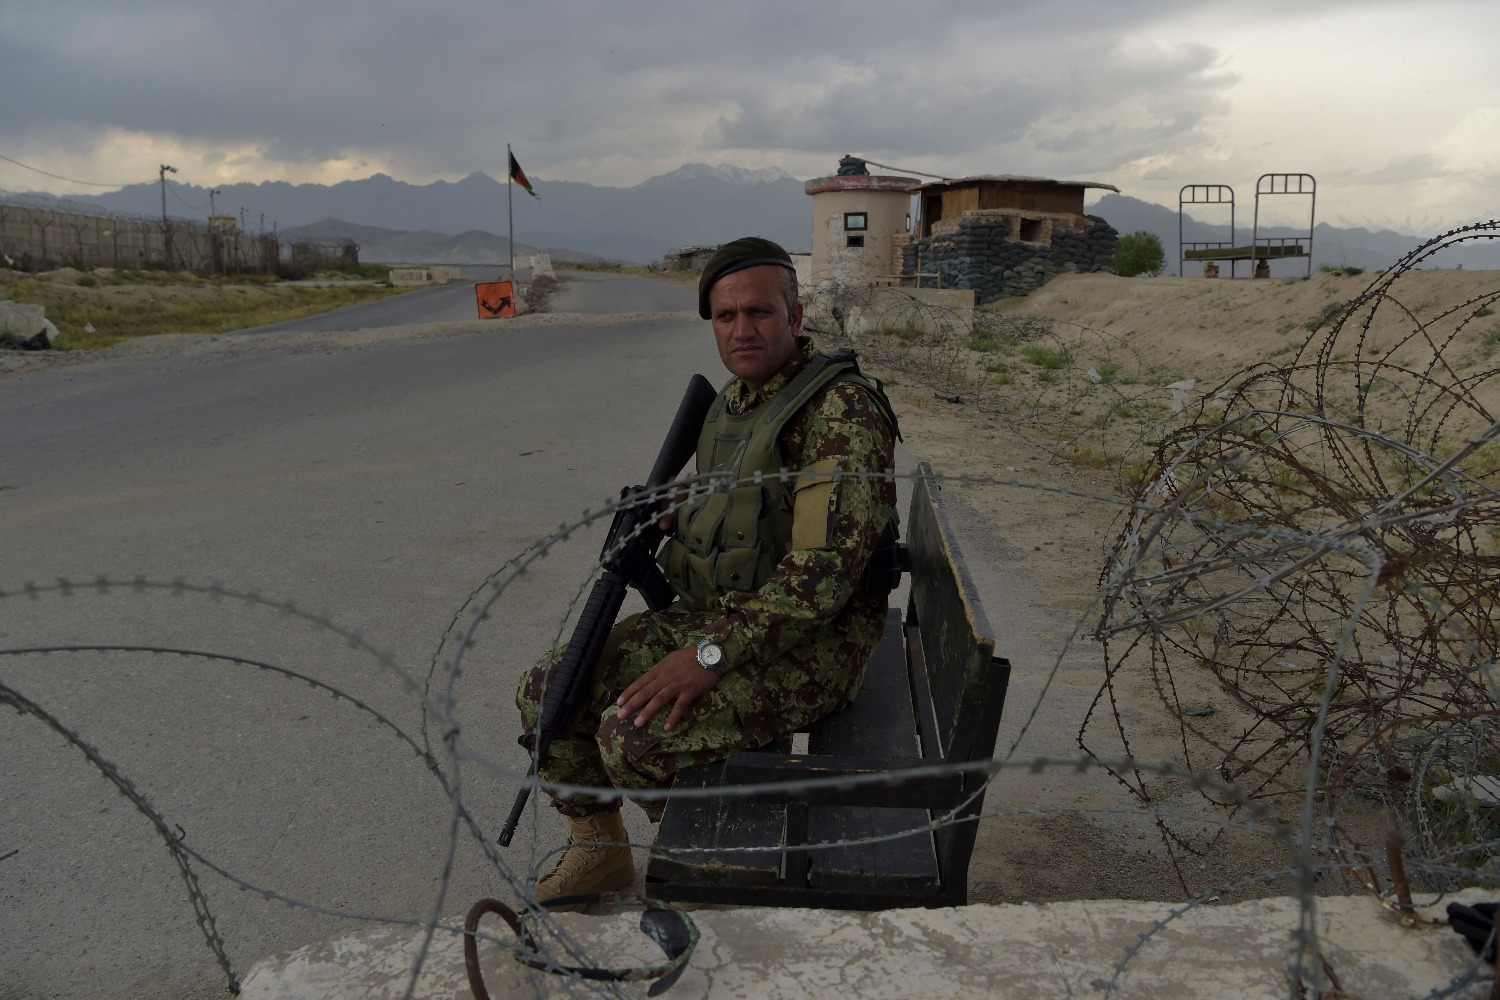 An Afghan soldier sits at a road checkpoint near a U.S. military base.